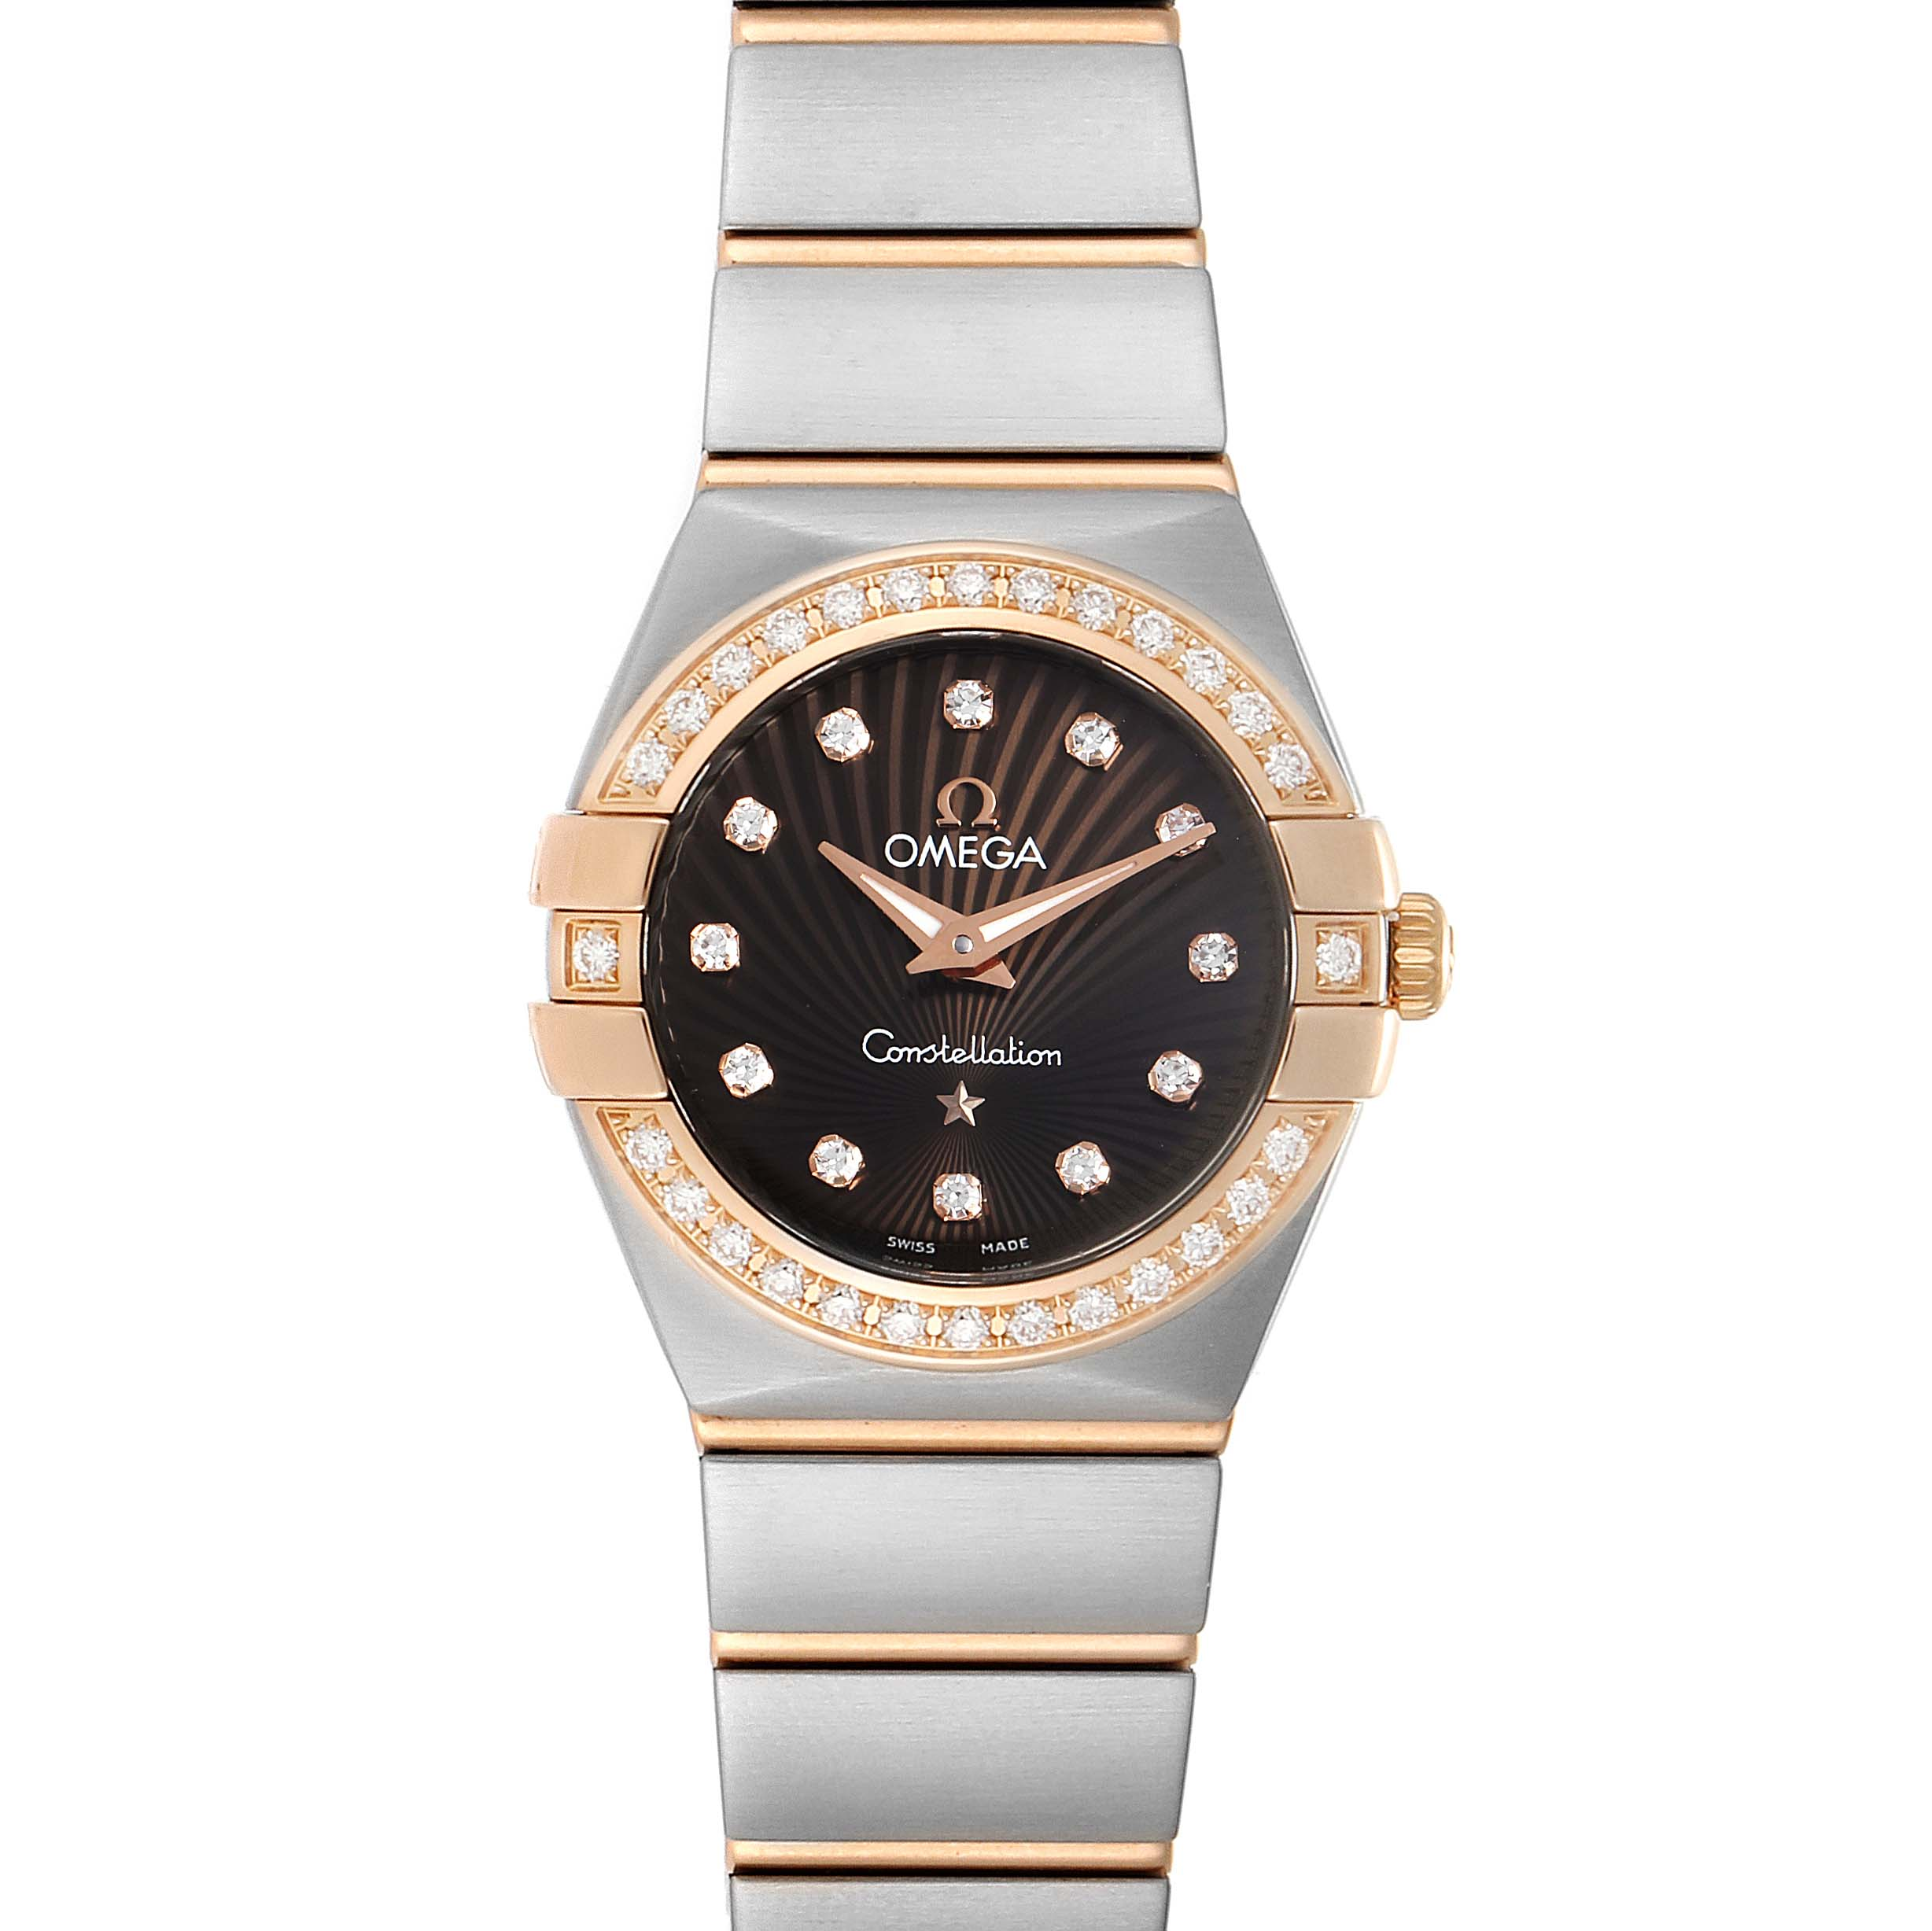 Photo of Omega Constellation MOP Diamond Steel Rose Gold Watch 123.25.24.60.63.001